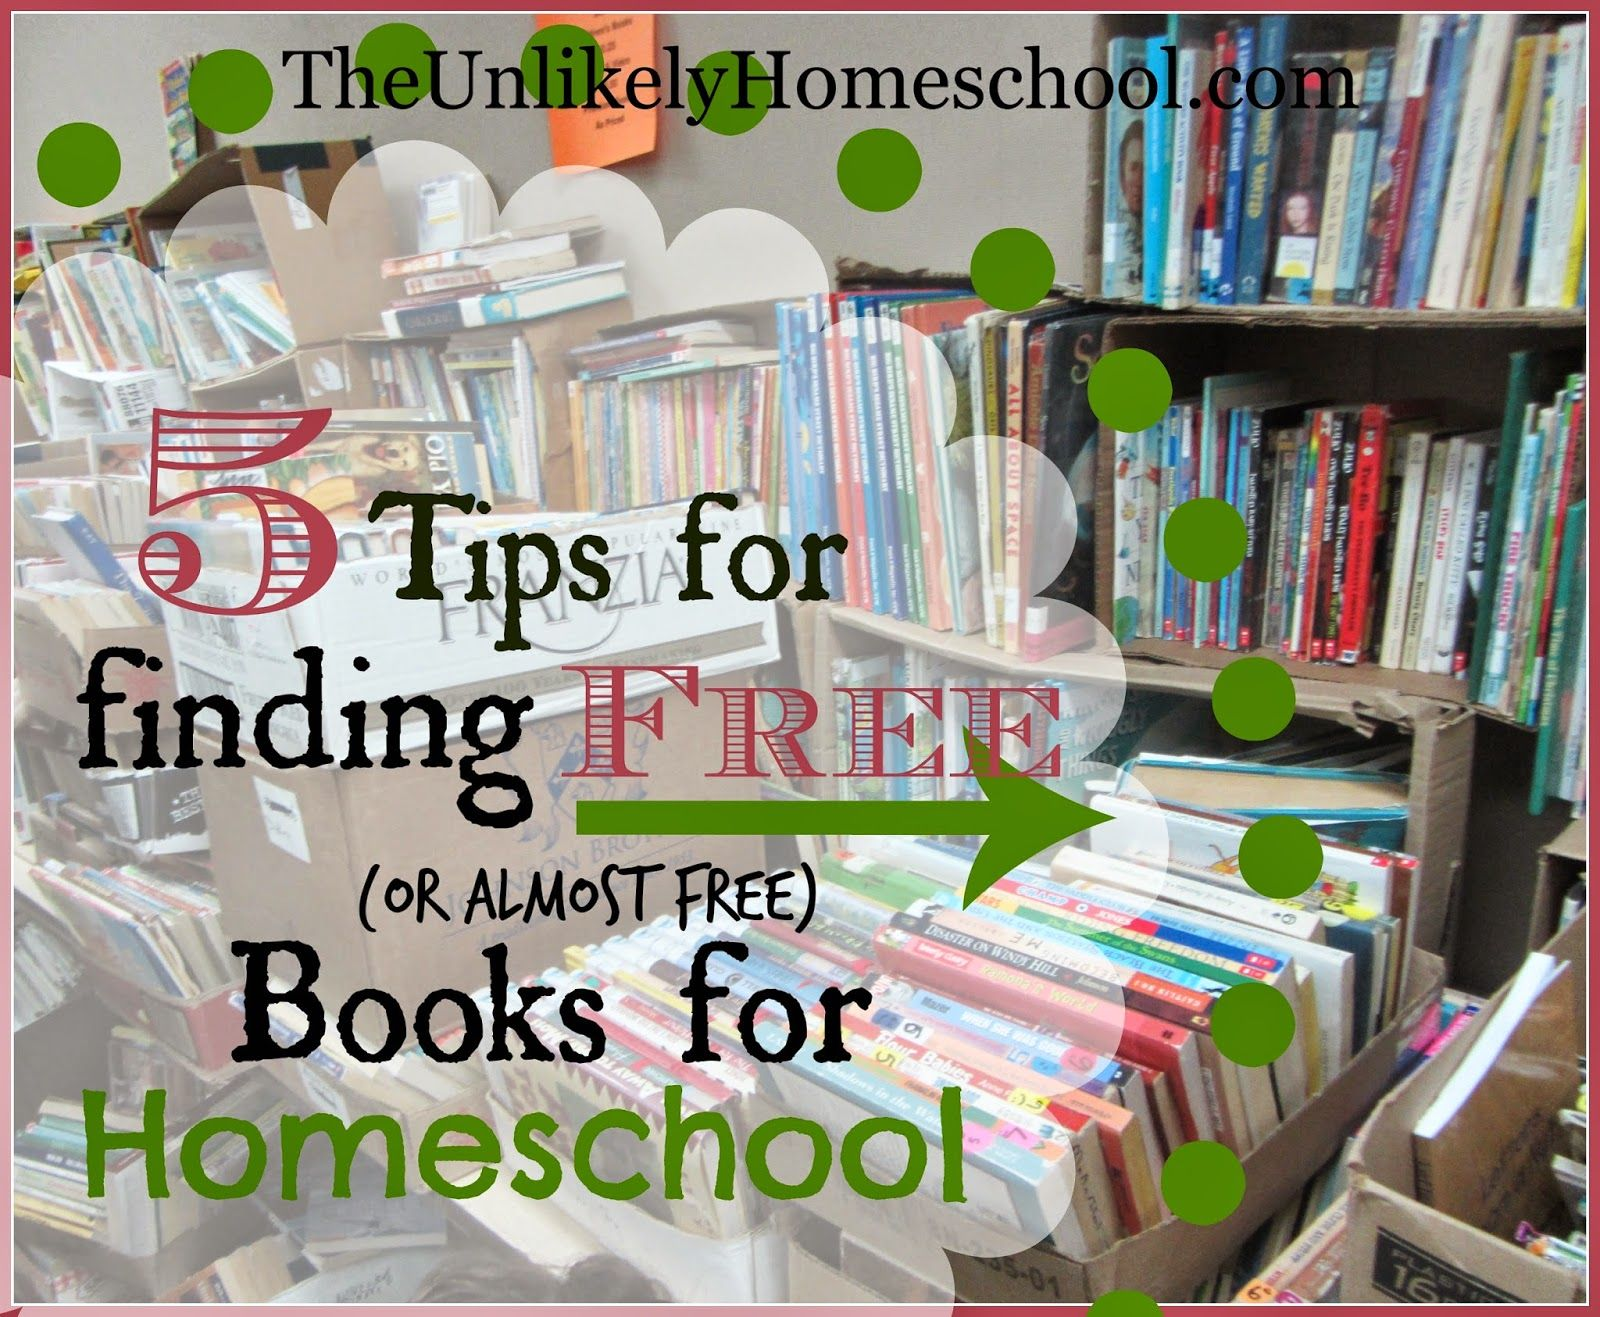 5 Tips For Finding Free Or Almost Free Books For Homeschool The Unlikely Homeschool